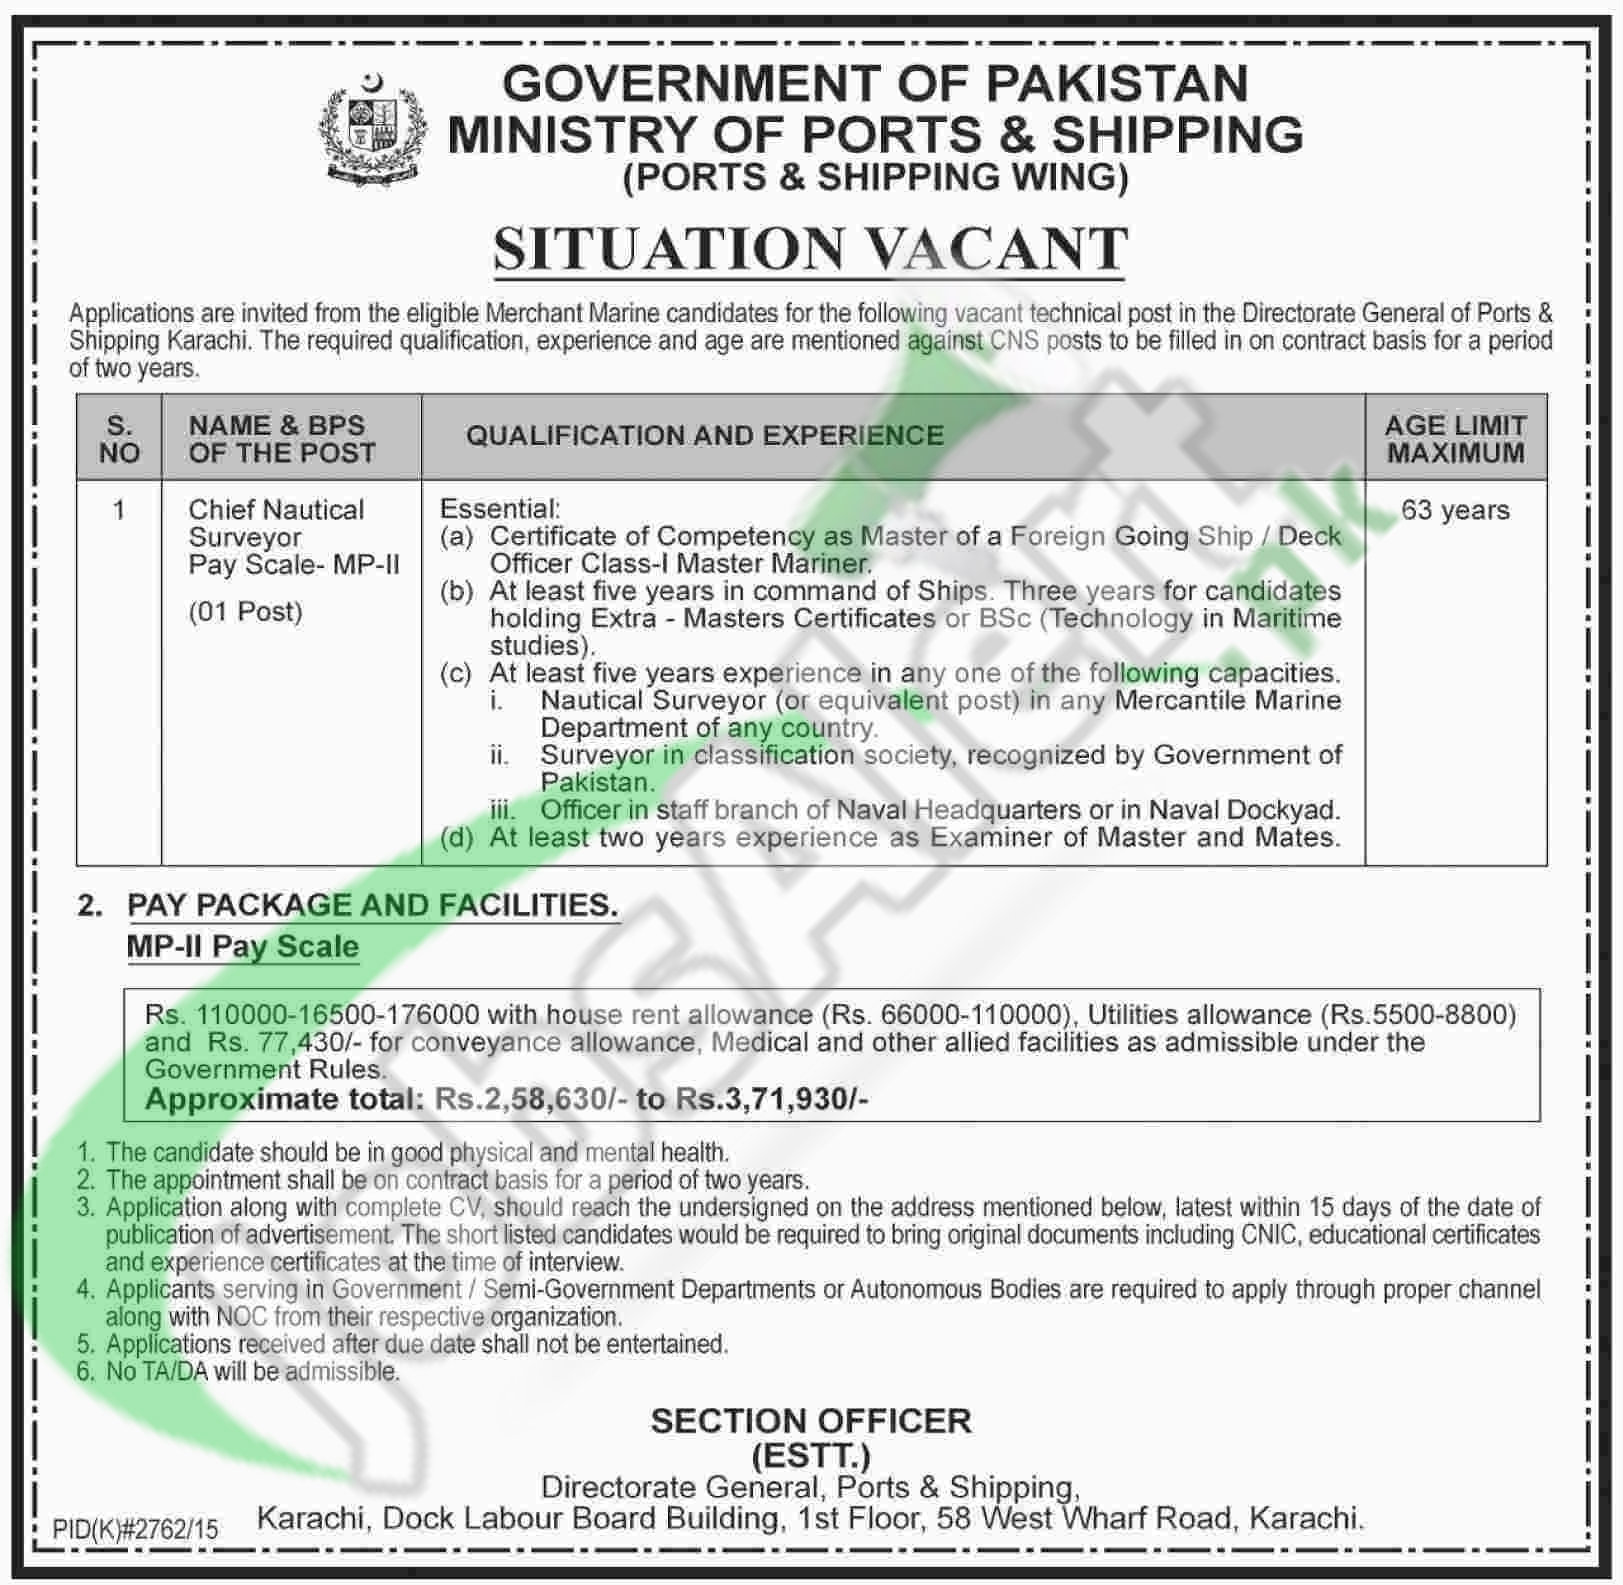 Ministry of Ports & Shipping 2016 Karachi Recruitment Opportunities for Chief Nautical Officer